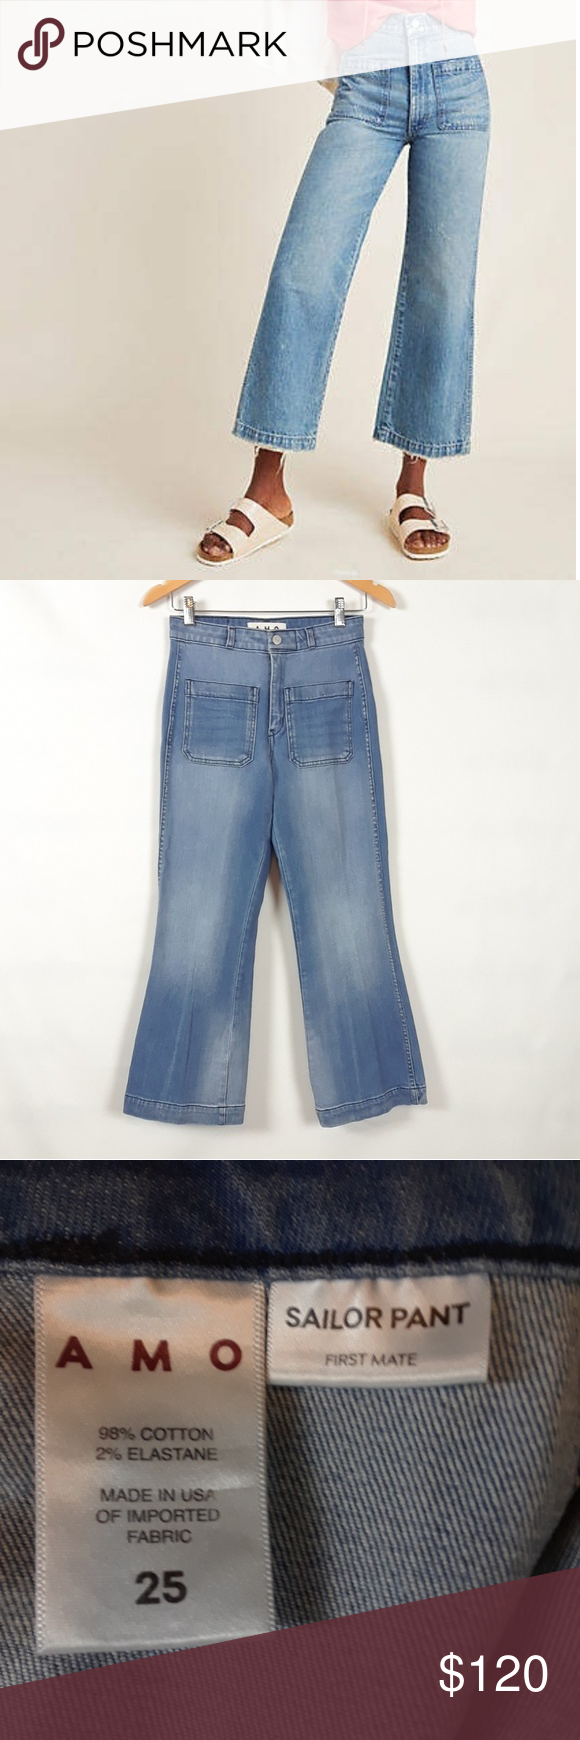 Anthropologie Amo Sailor High Rise Jeans Size 25 High Rise Jeans Sailor Pants Clothes Design